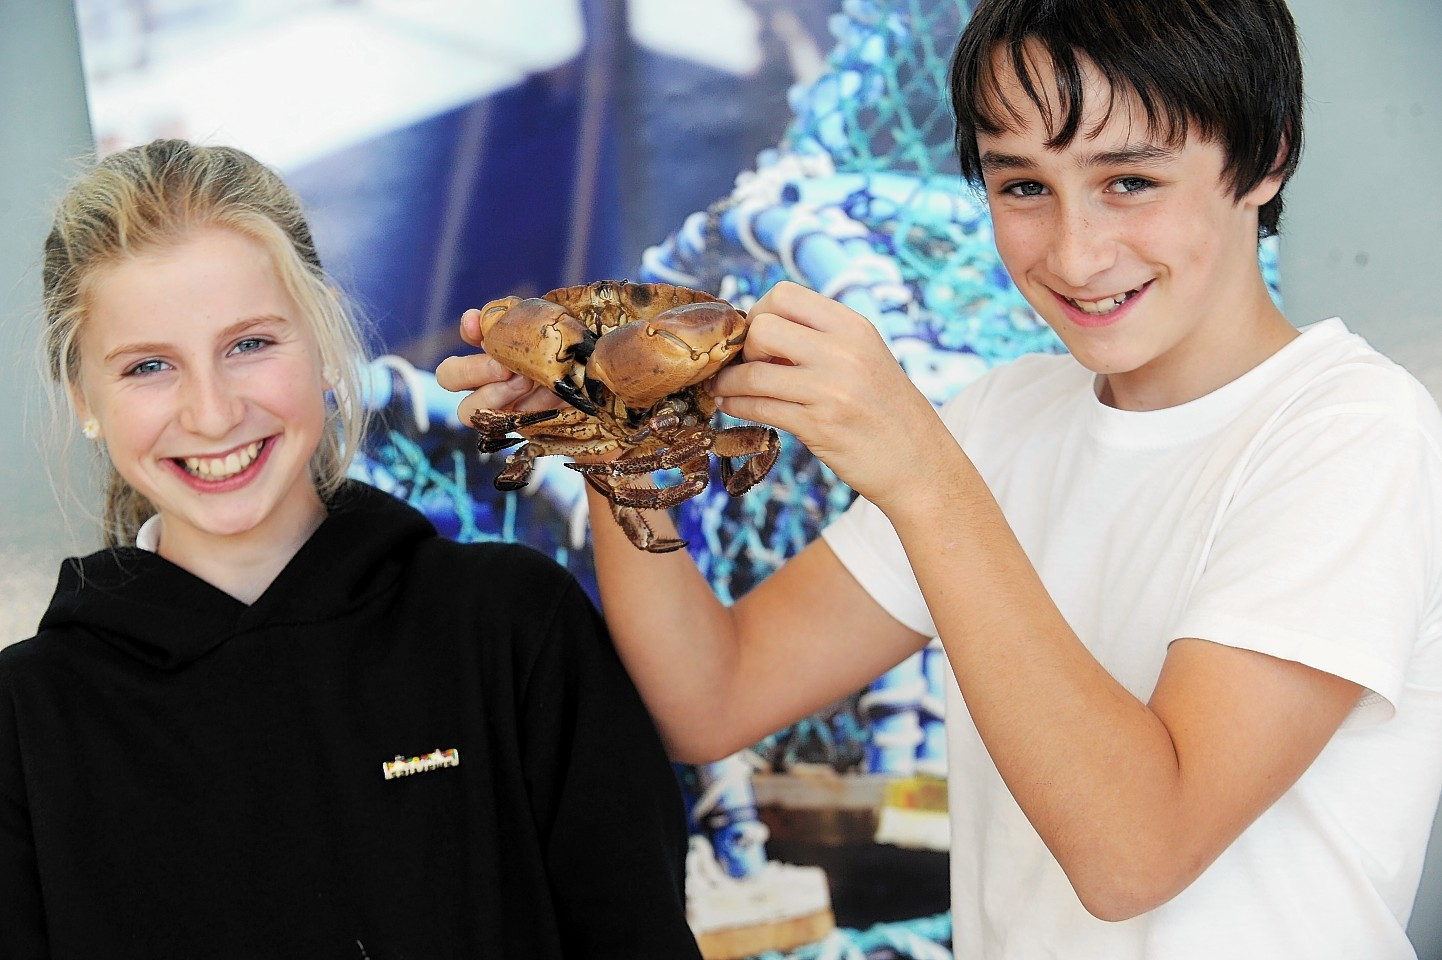 Fortrose Academy pupils Sarah Holden and James Thomson, both aged 12, with some of the seafood on show